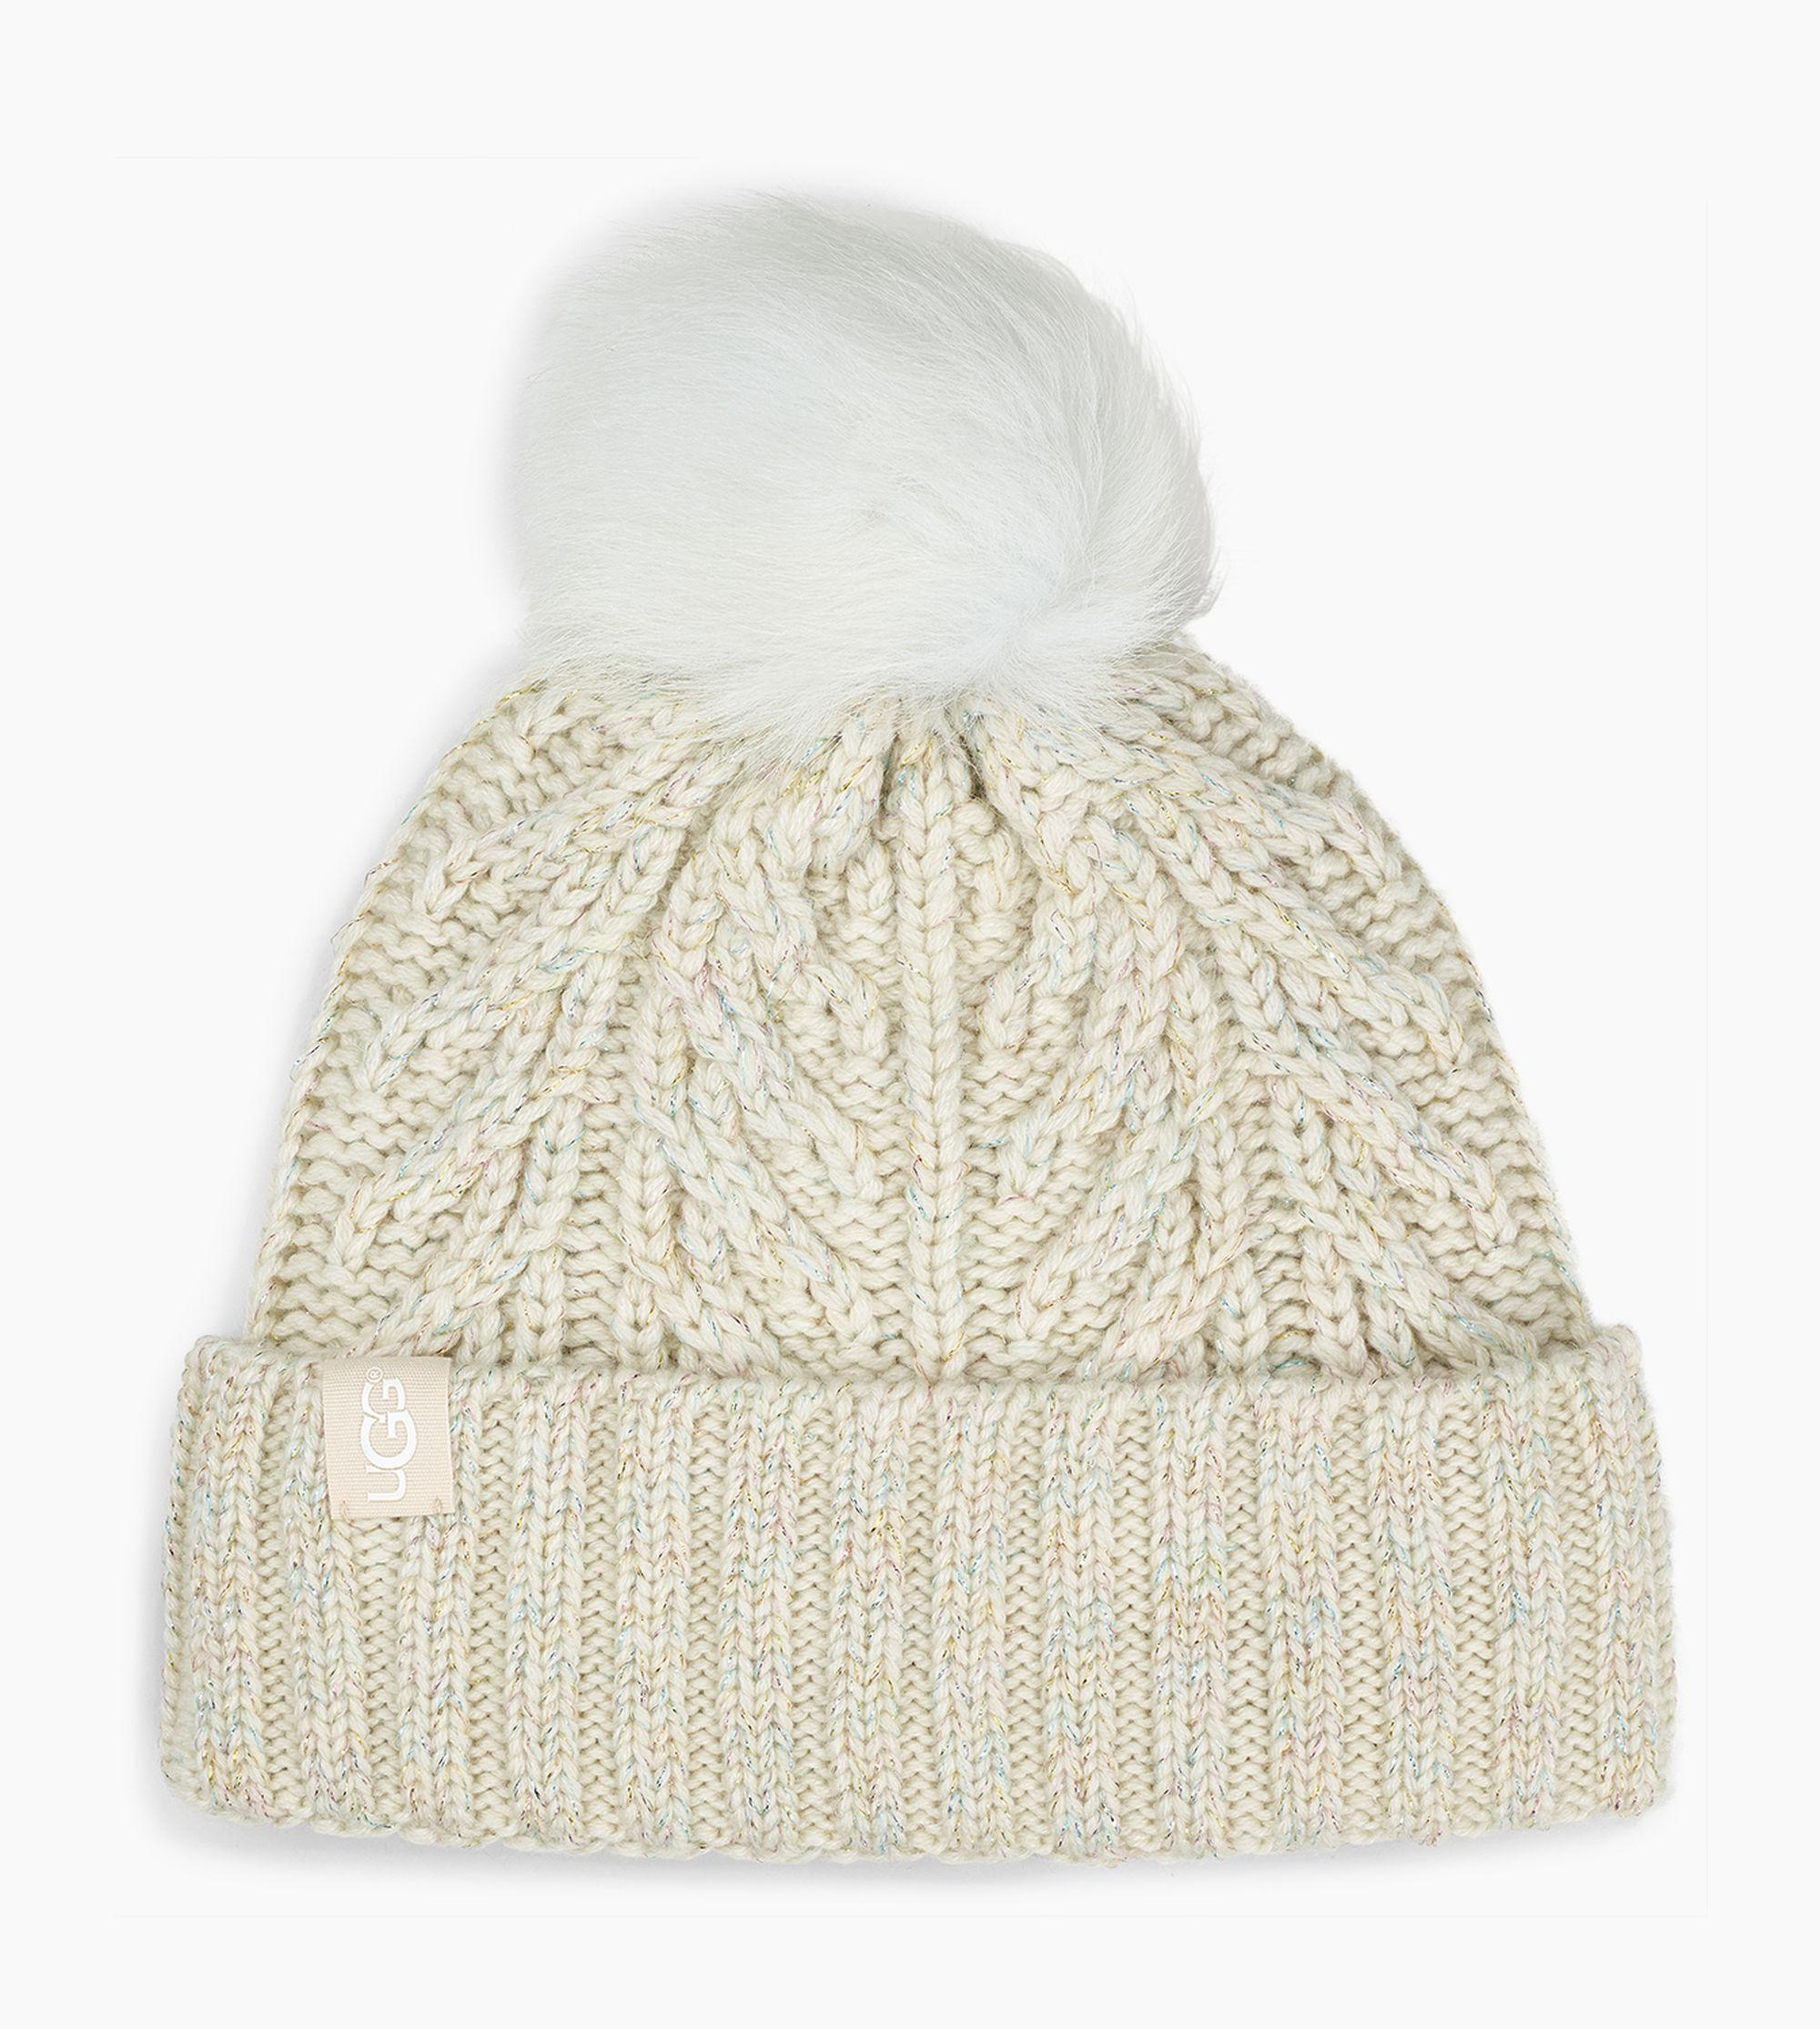 69e4a5226849f Lyst - UGG Cable Pom Beanie Cable Pom Beanie in Metallic